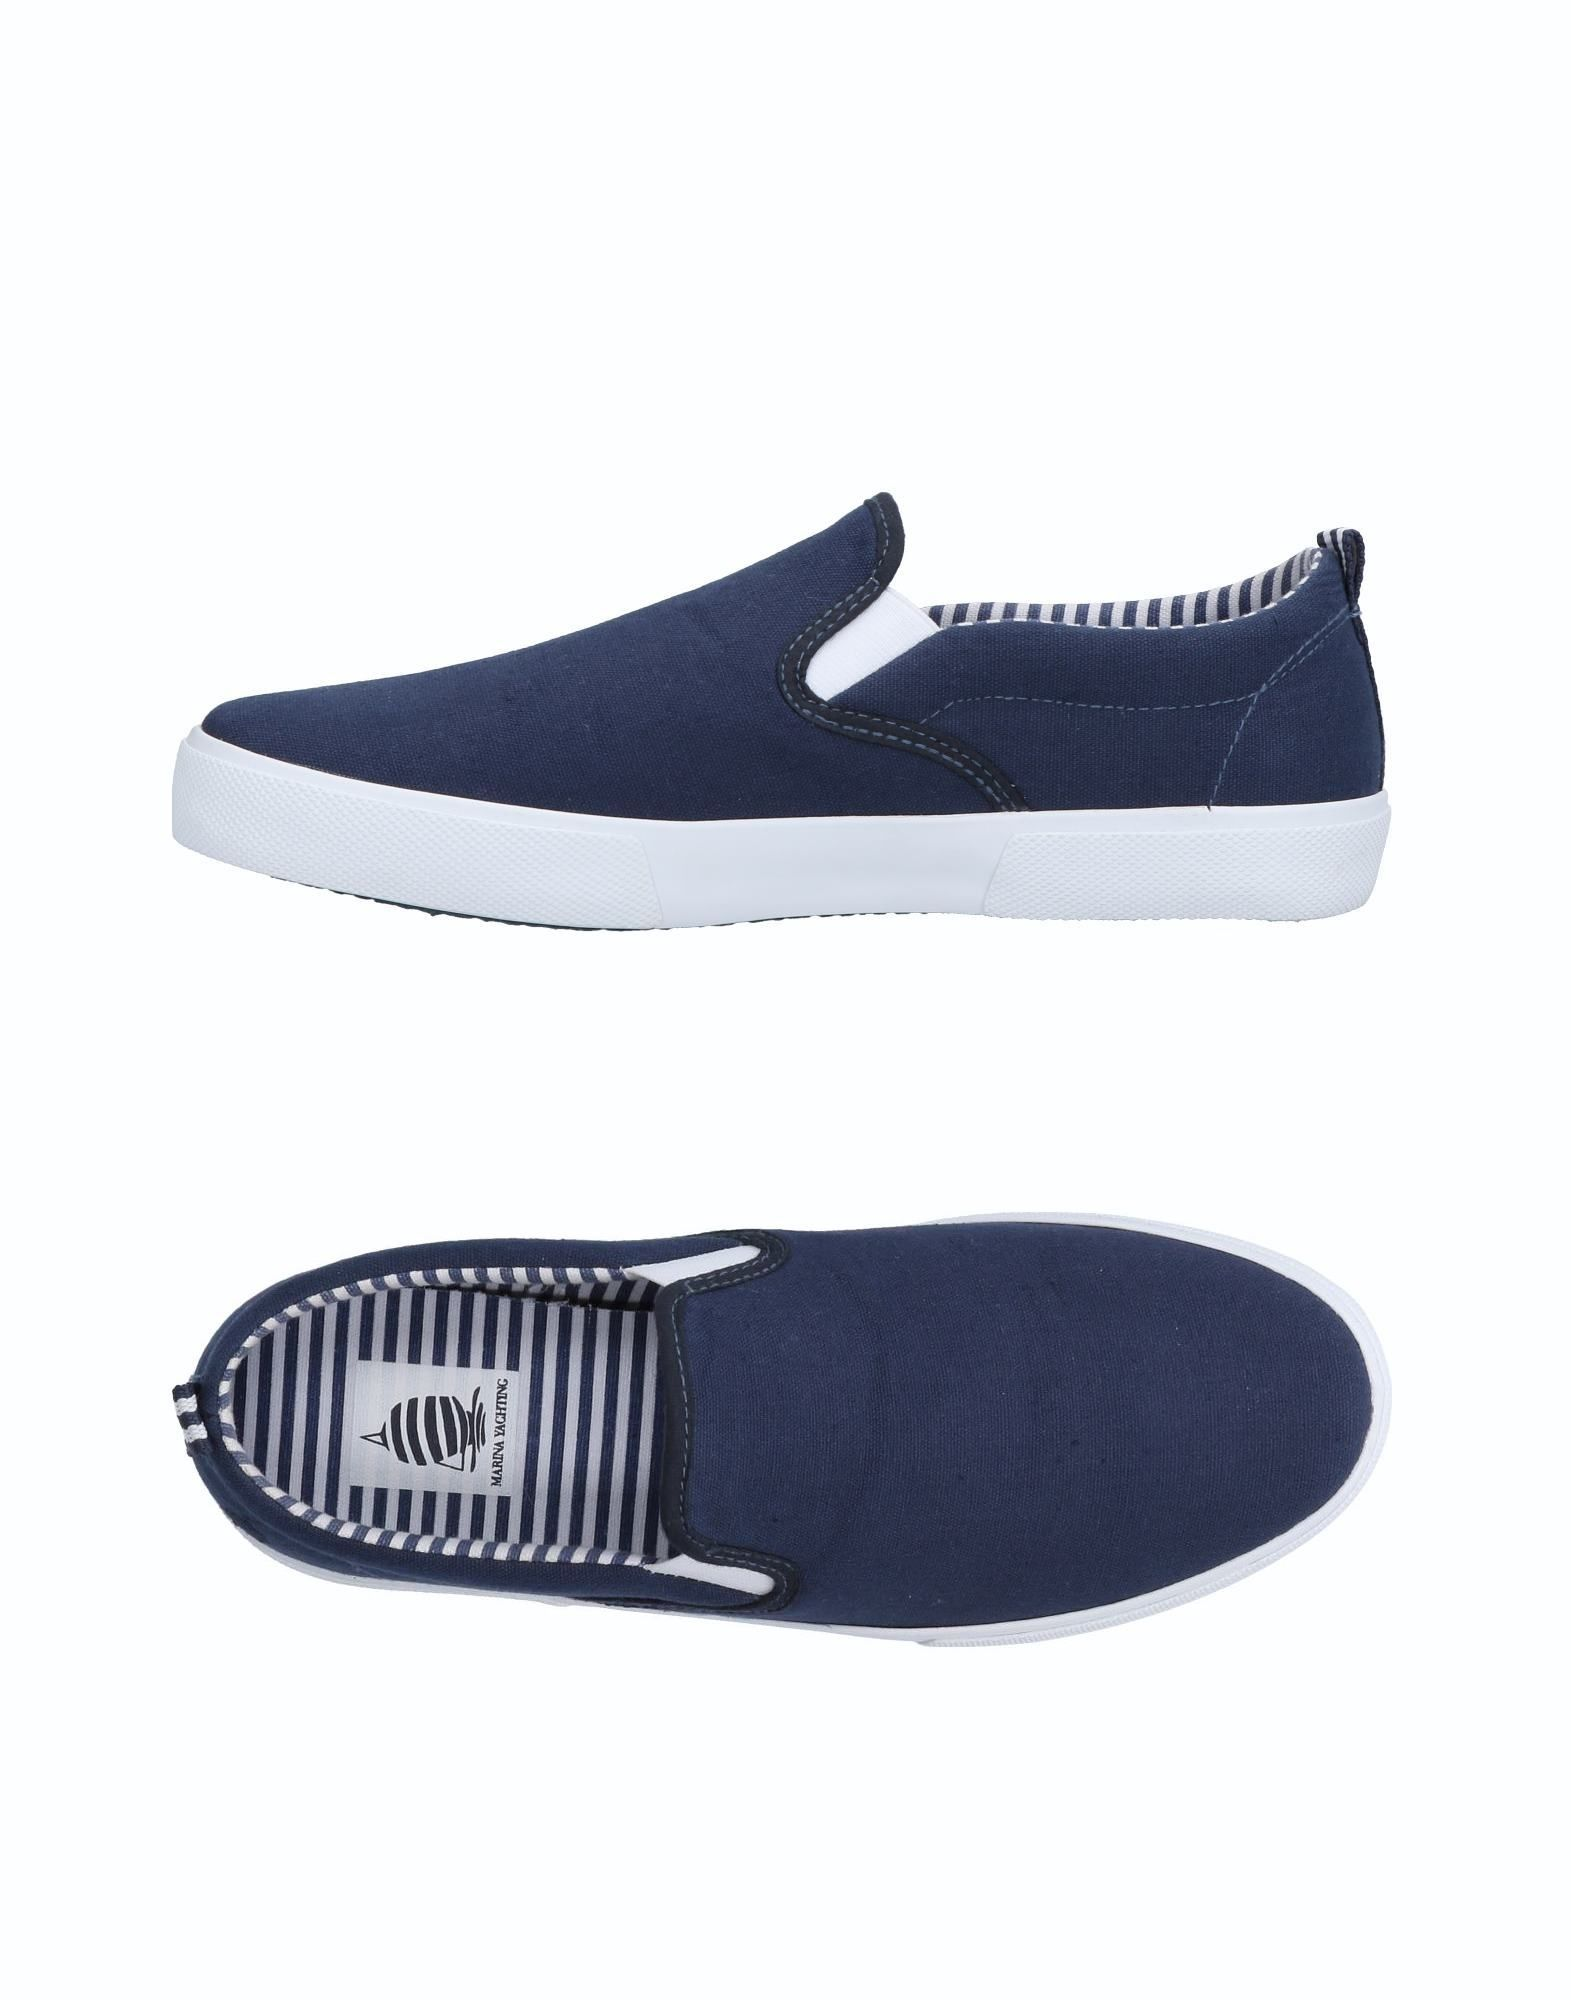 Yachting Marina Yachting  Sneakers Herren  11228909MX e6f3cb